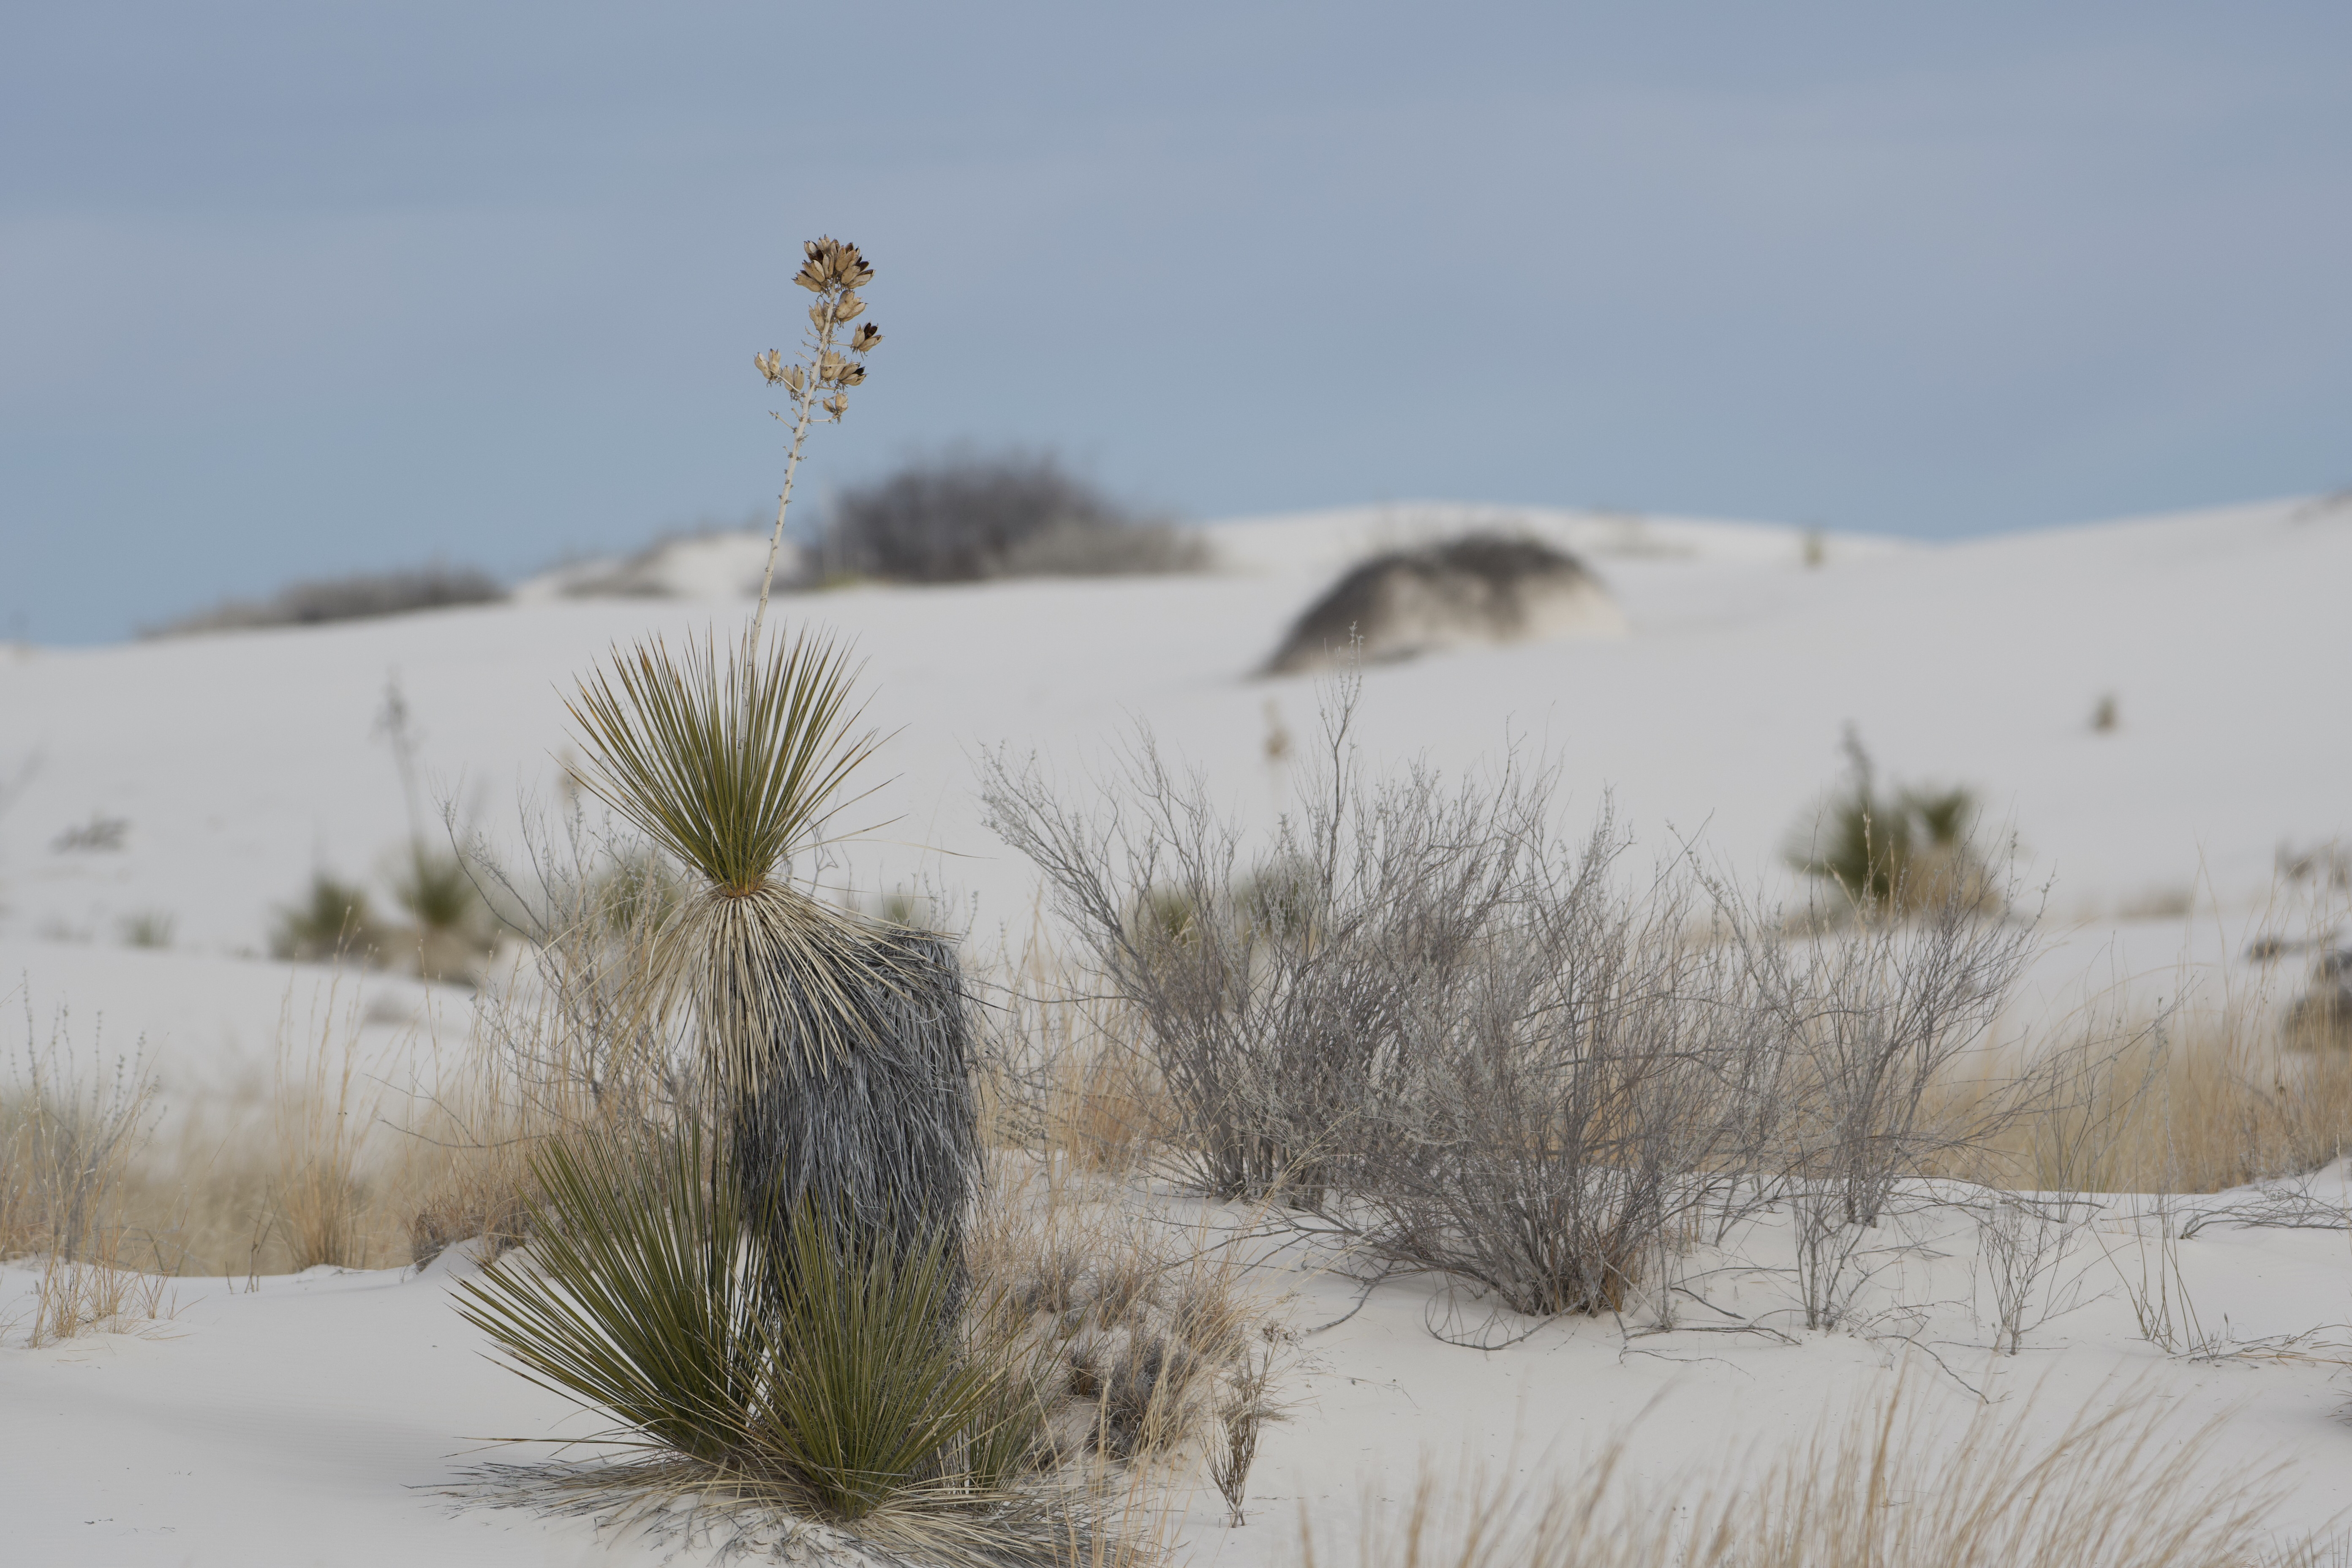 A scene of the vegetation and dunes at White Sands National Prk